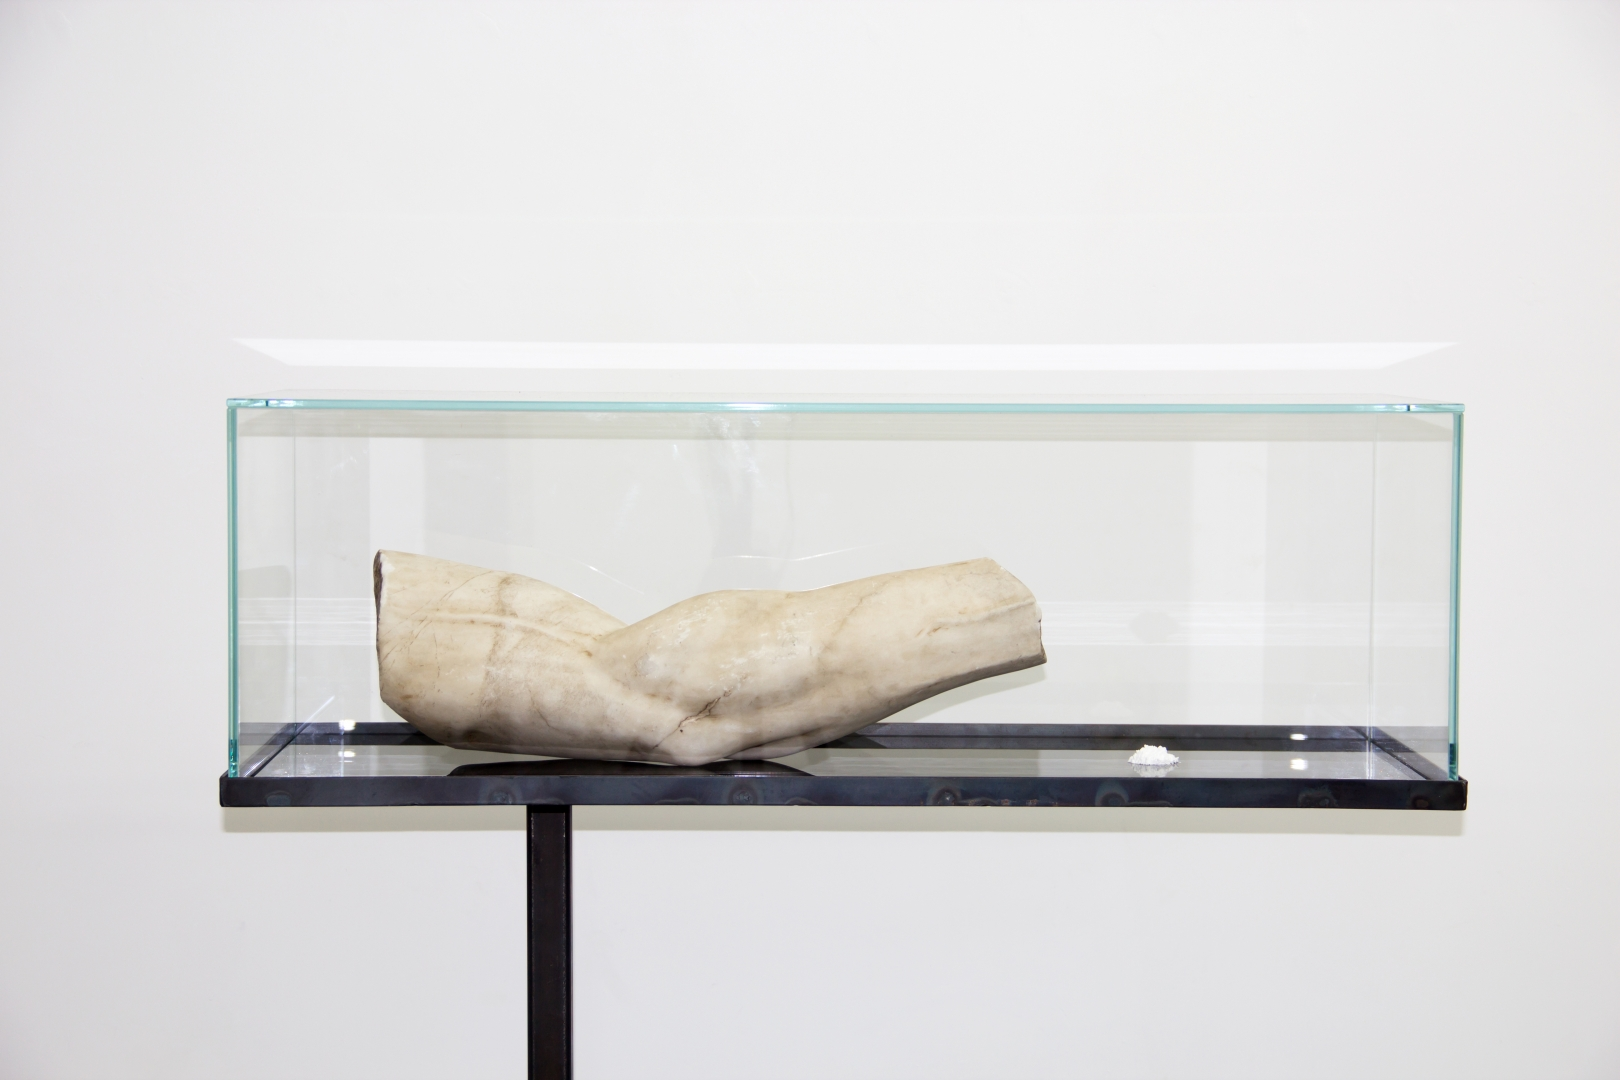 Christian Fogarolli, Lithos, 2016, white marble of Carrara, iron, lithium, glasses, 110 x 85 x 30 cm